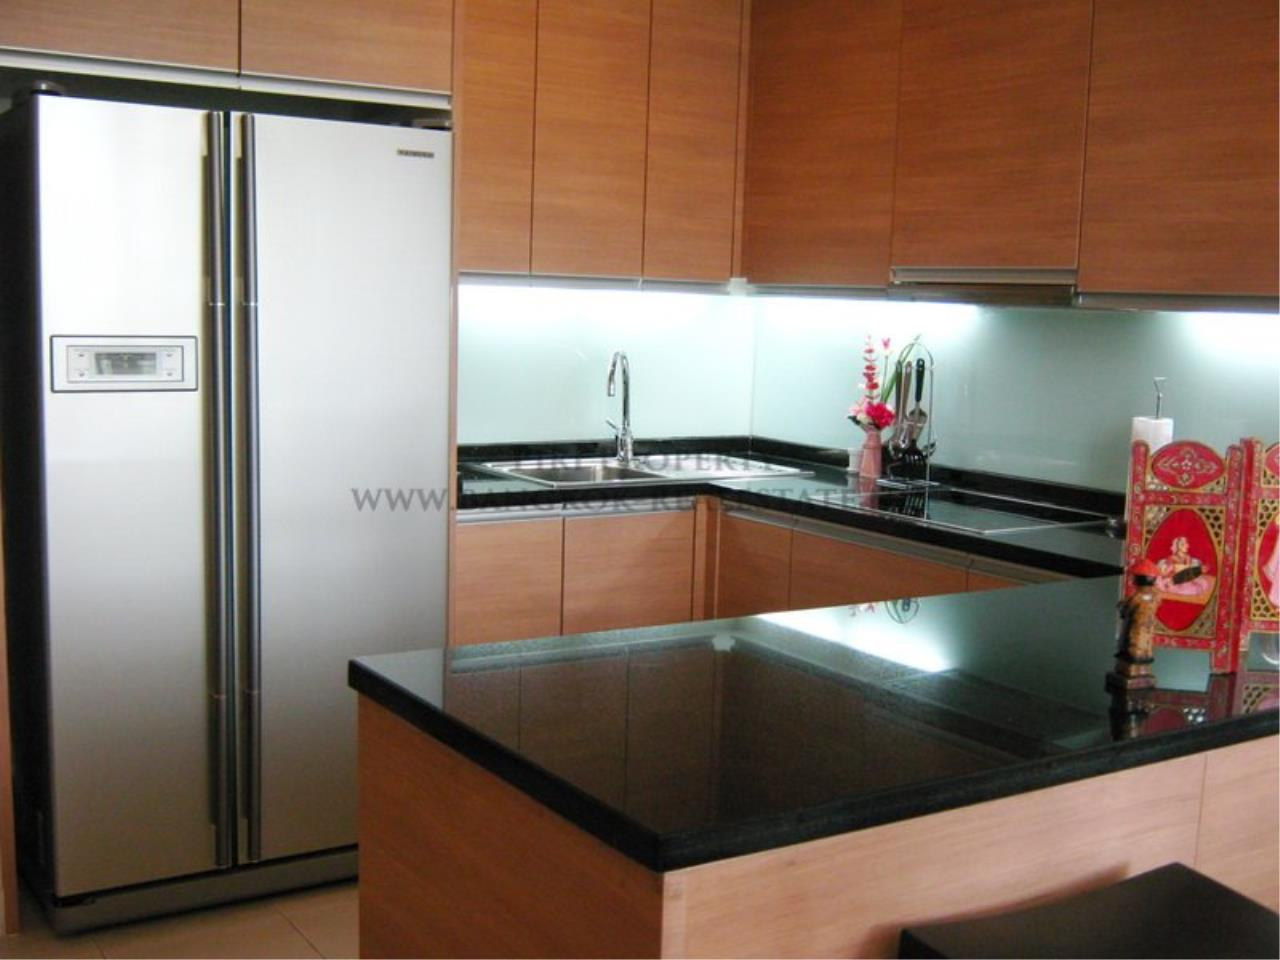 Piri Property Agency's Spacious 3 Bedroom near Asoke on Sukhumvit Soi 20 - 200 SQM 4